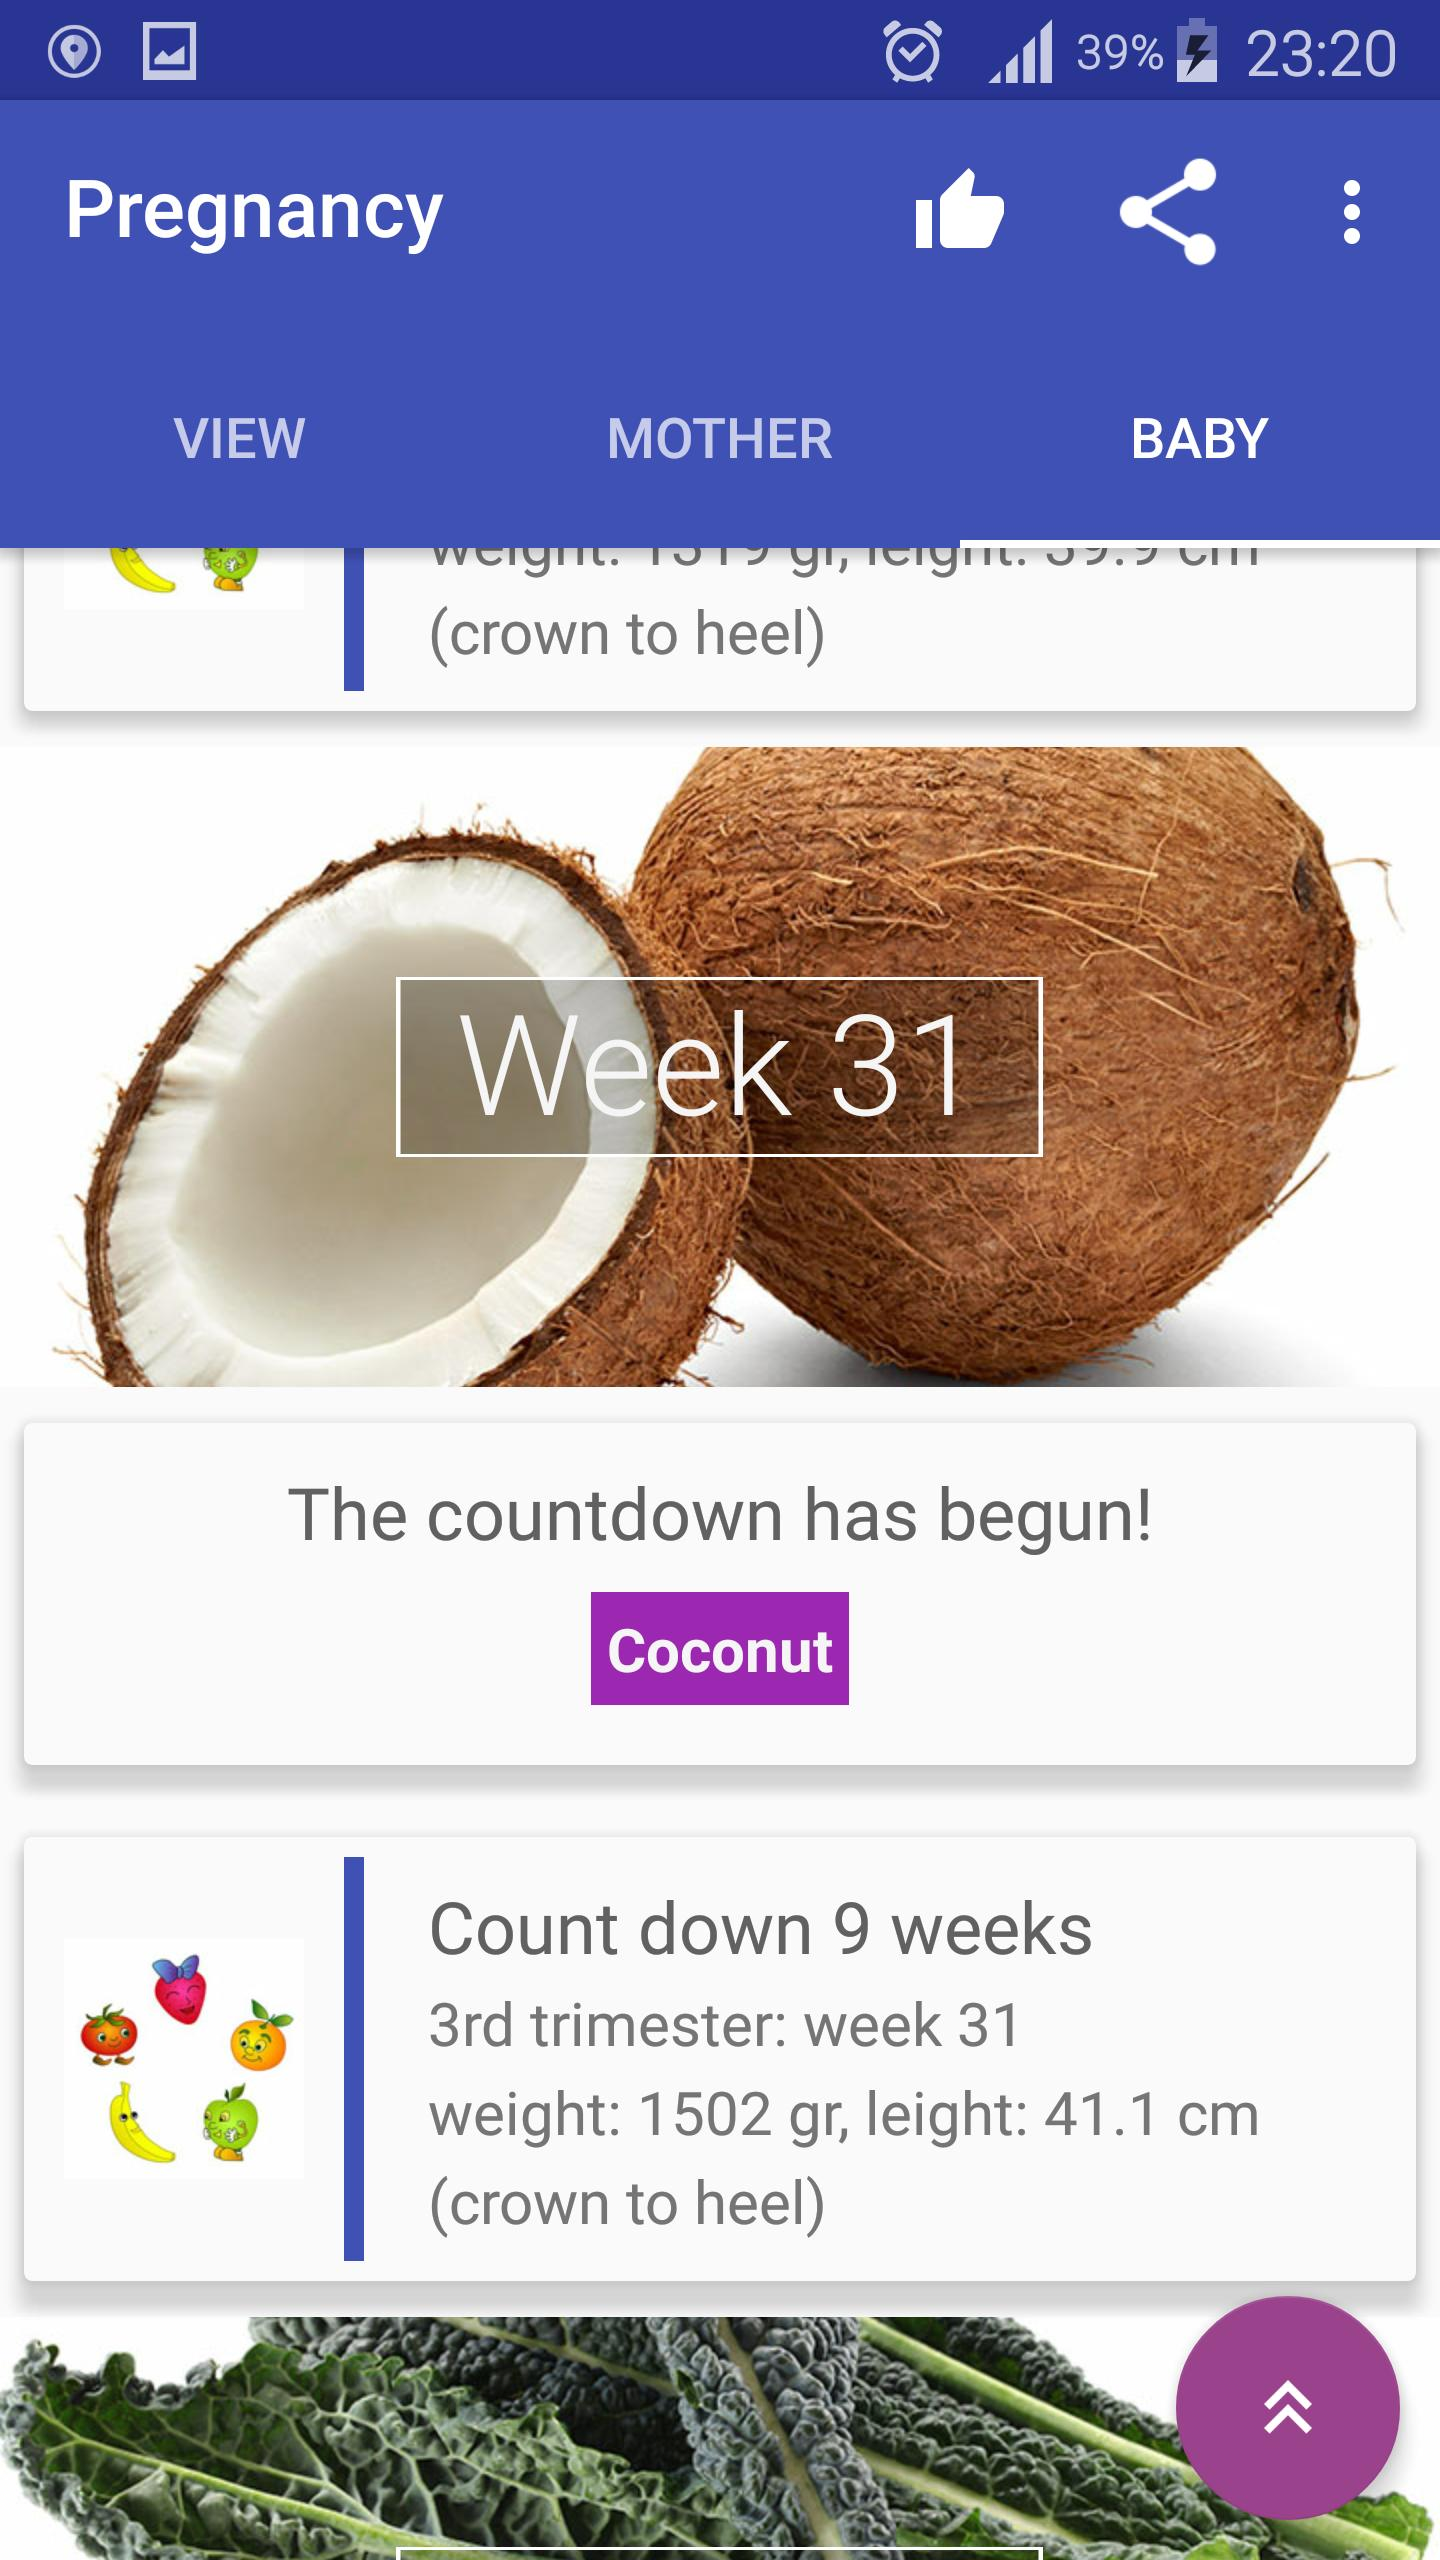 Pregnancy - 9 Months Pregnant for Android - APK Download